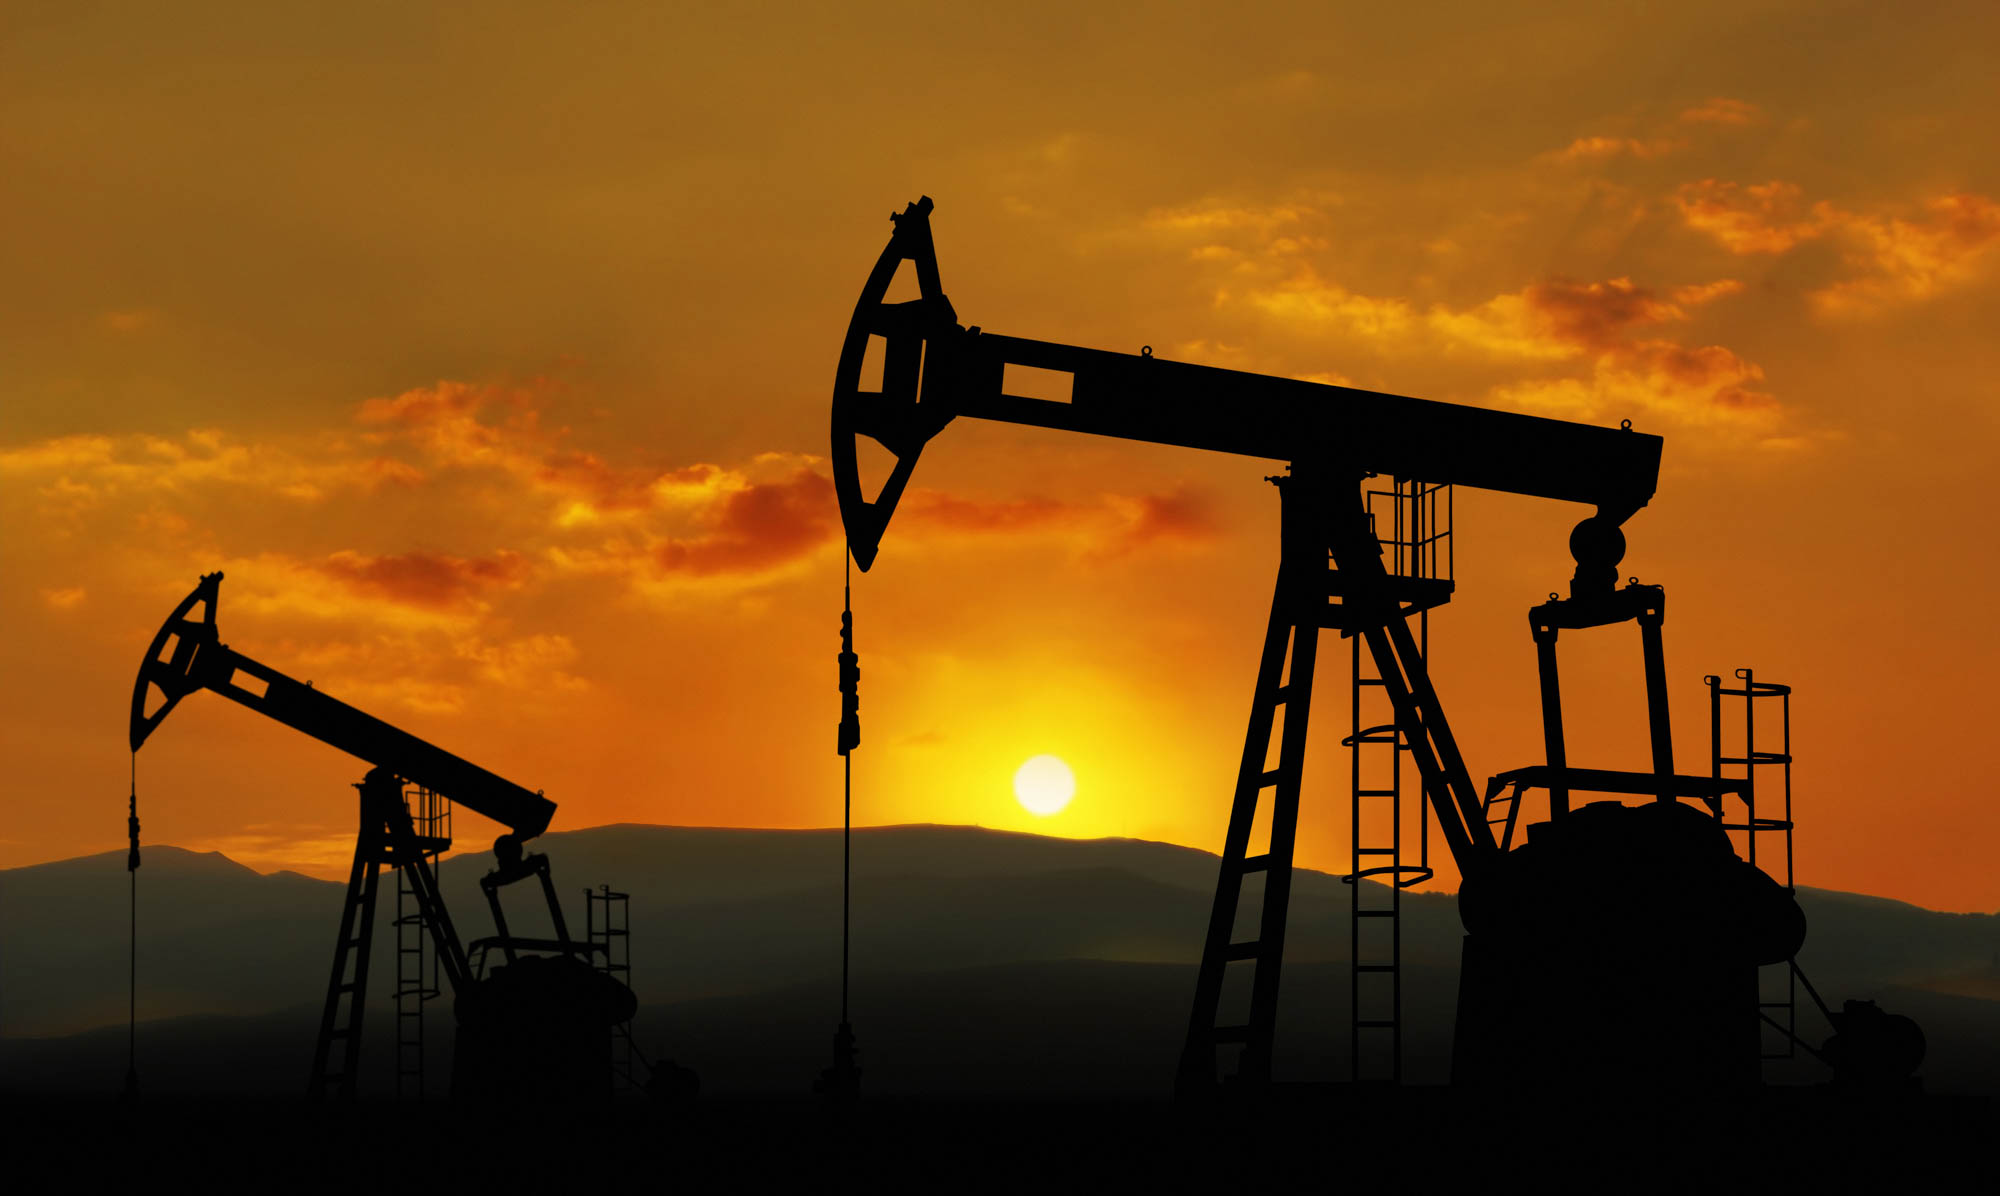 Background image of oil filed and pumps at sunset